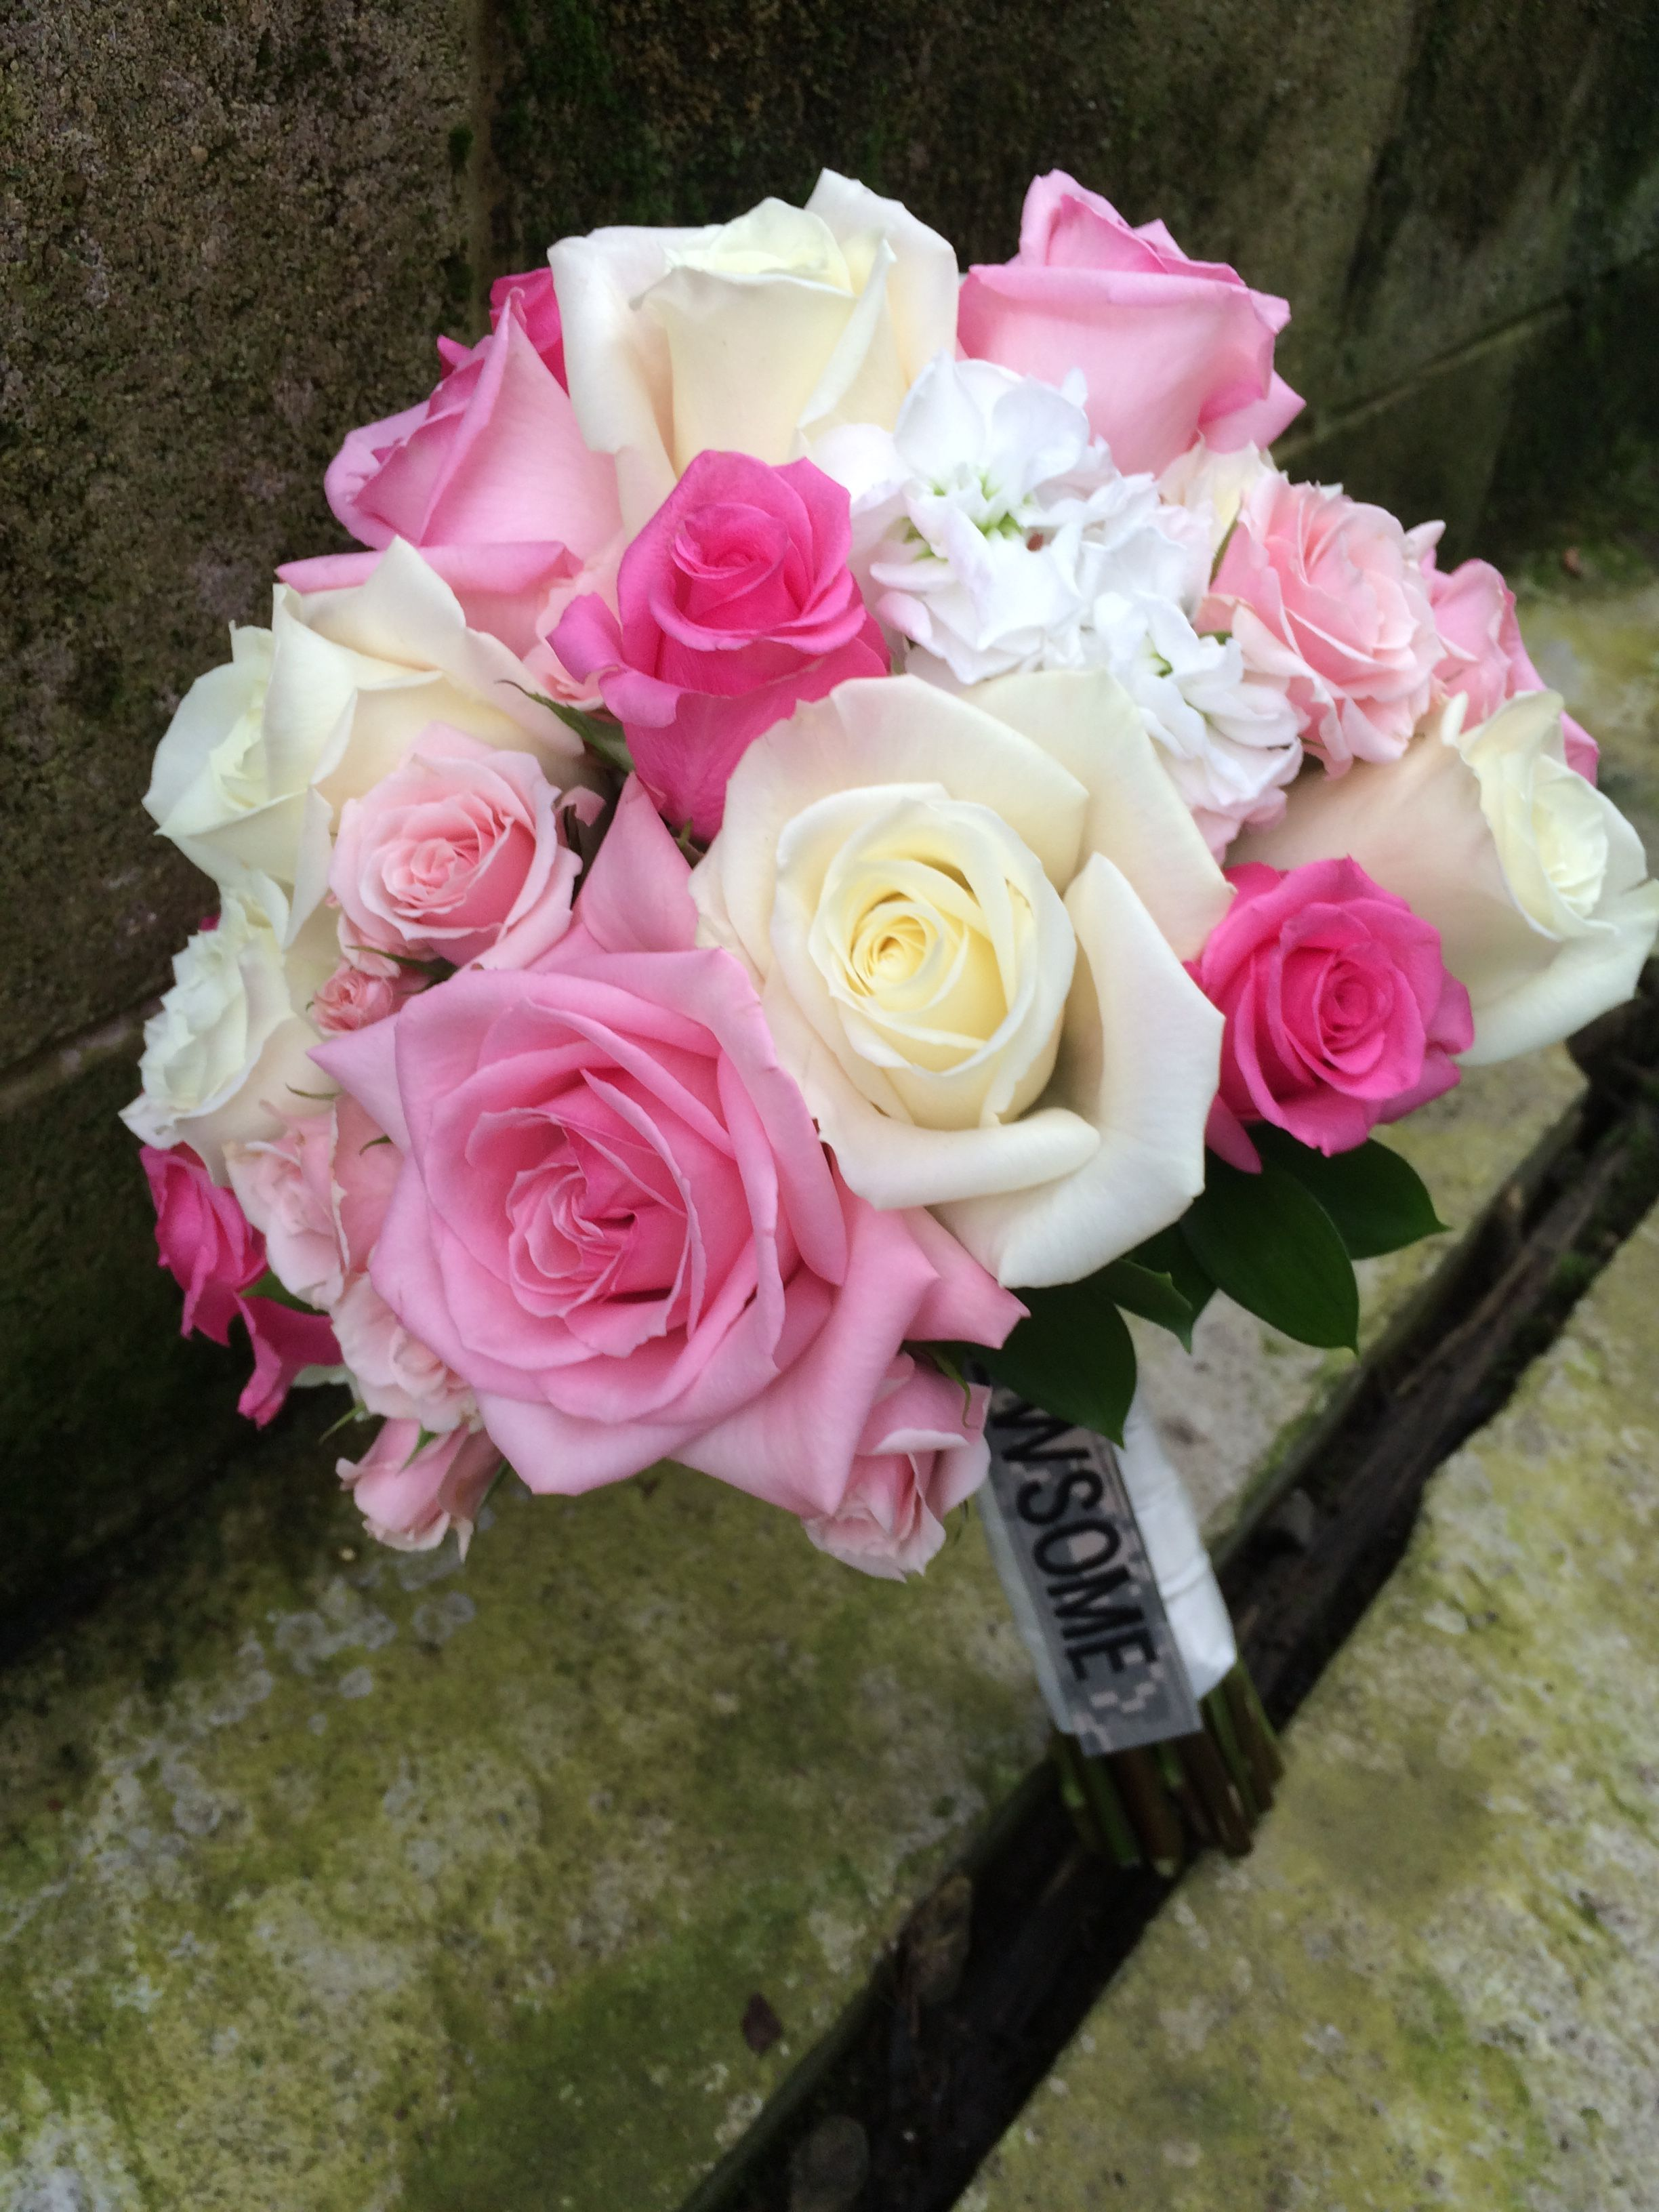 Roses. Simply roses in this pink and white bridal bouquet #furstflorist #furstevents #datytonweddings